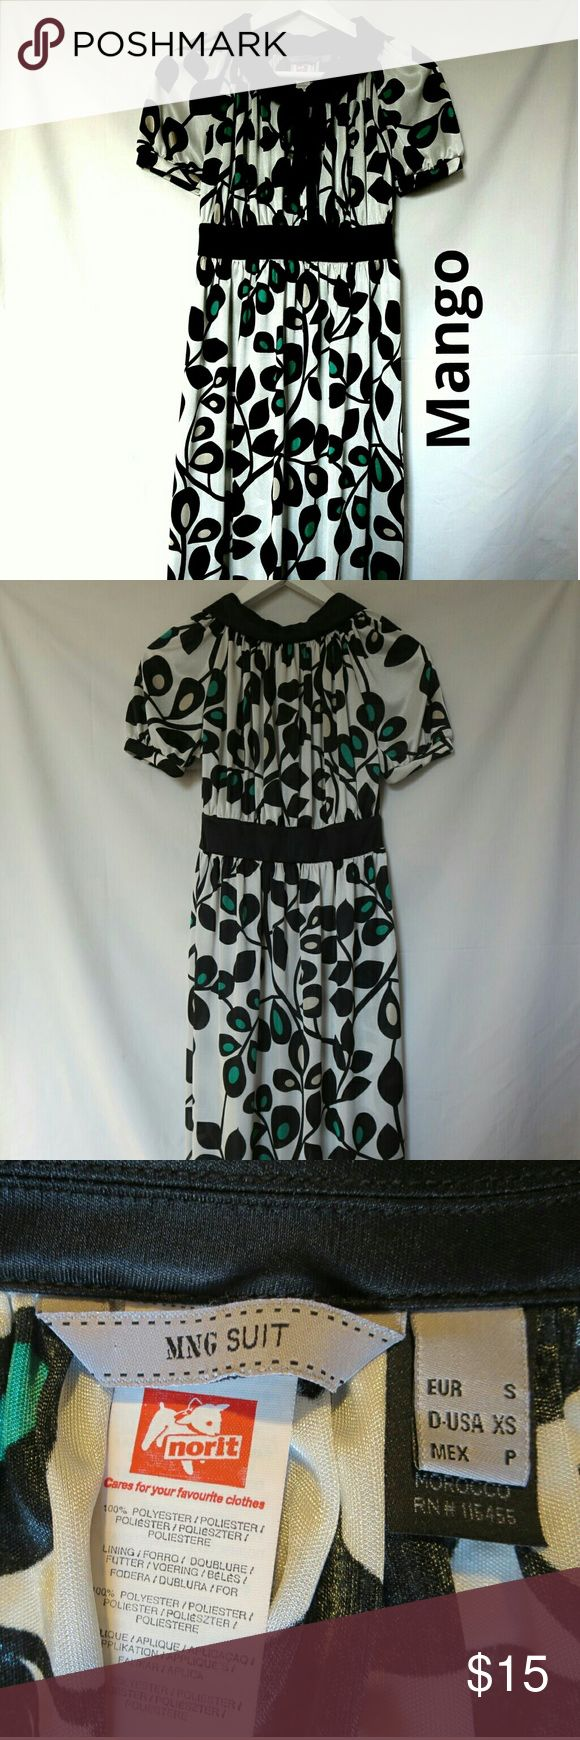 "Mango Suit Size XS Midi White Dress All year round dress!!! Great w sandals in summer, w boots and a cardigan in winter. Total length 47"". Black, green, tan leaf patterned. 5 buttons & black ribbon neck closing. Open to all reasonable offers & questions. Happy shopping :) Mango Dresses Midi"